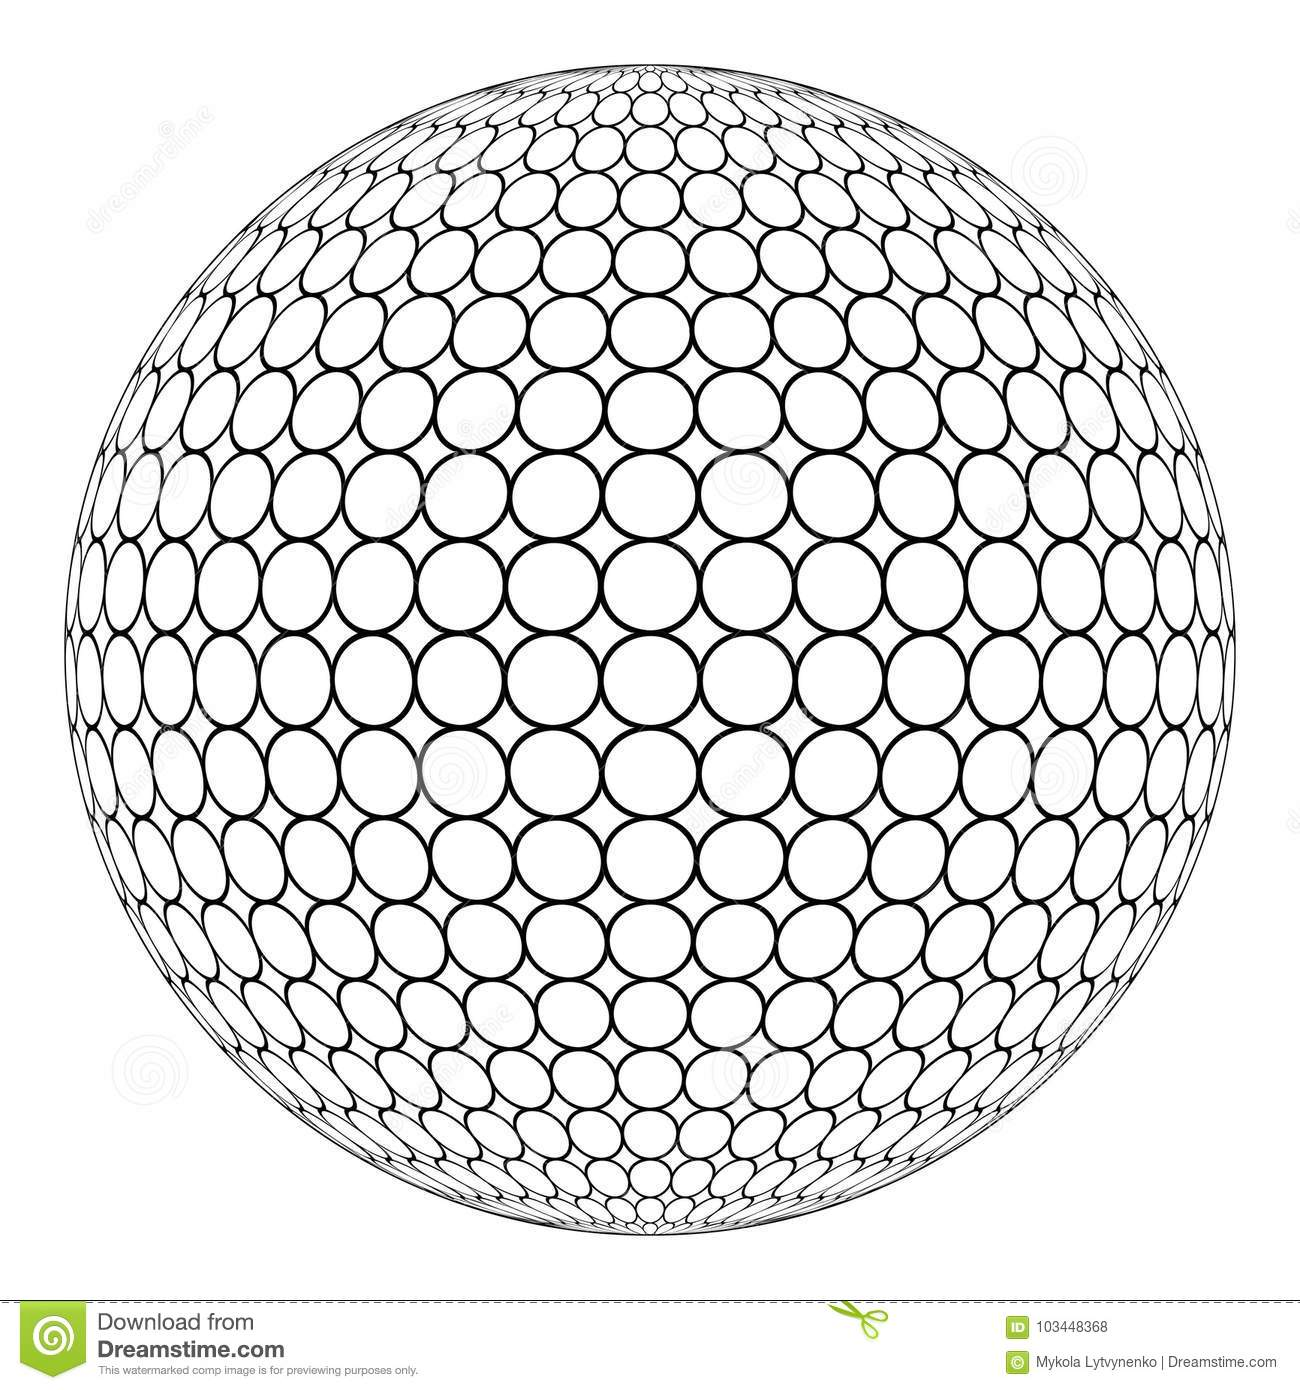 Globe 3D sphere with ring mesh on the surface, vector of the round structure of the sphere